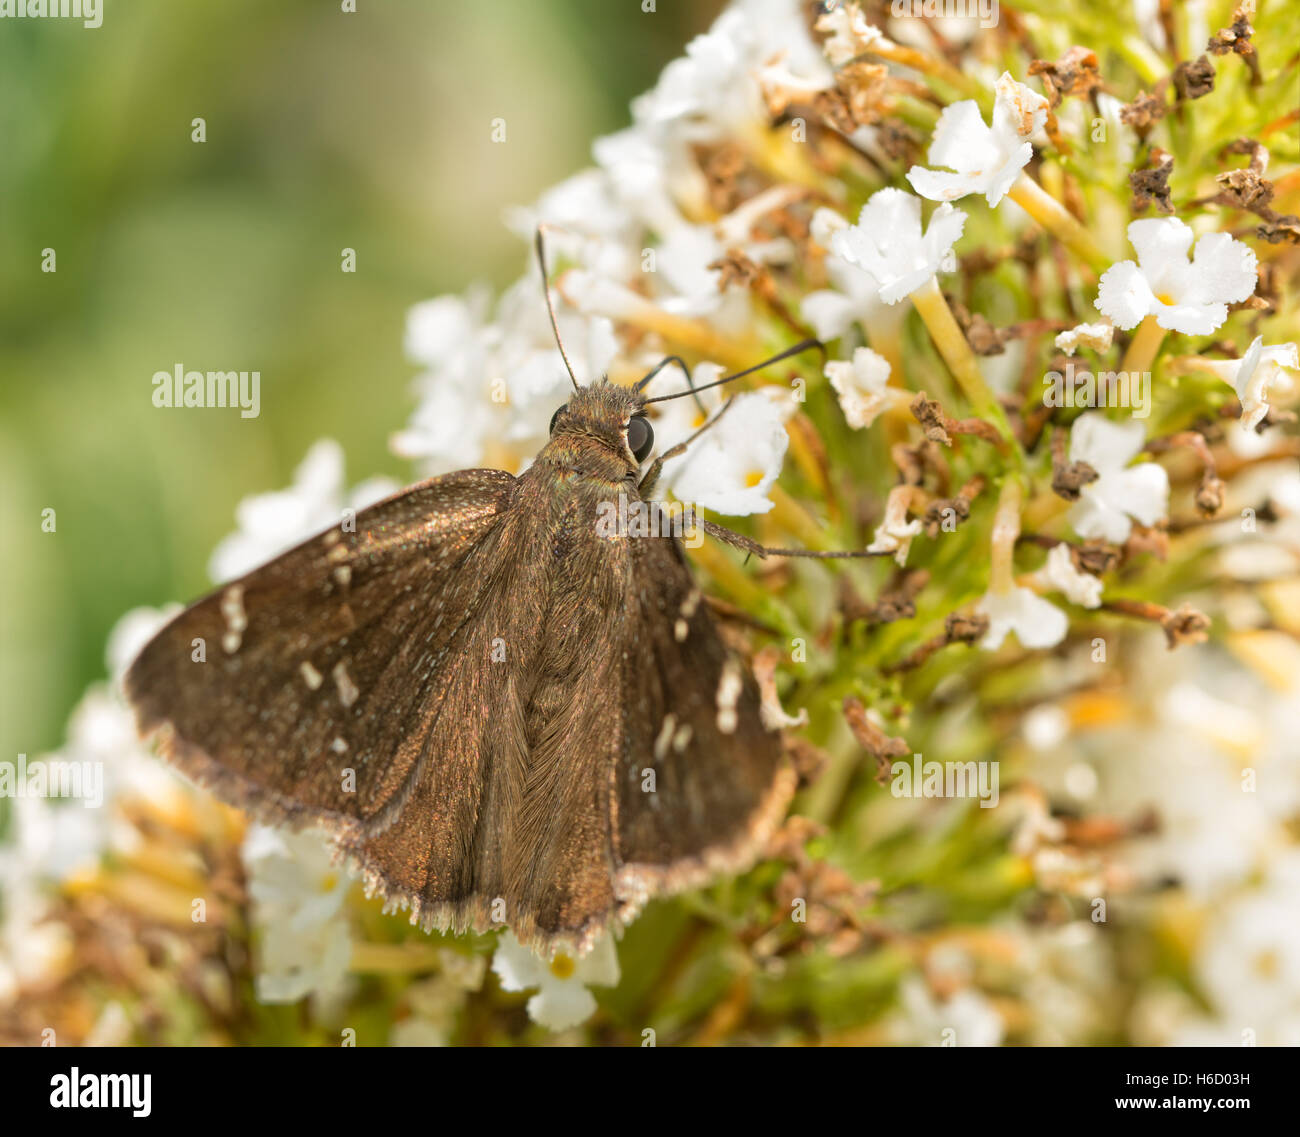 Confused Cloudywing butterfly feeding on white Butterflybush flowers - Stock Image